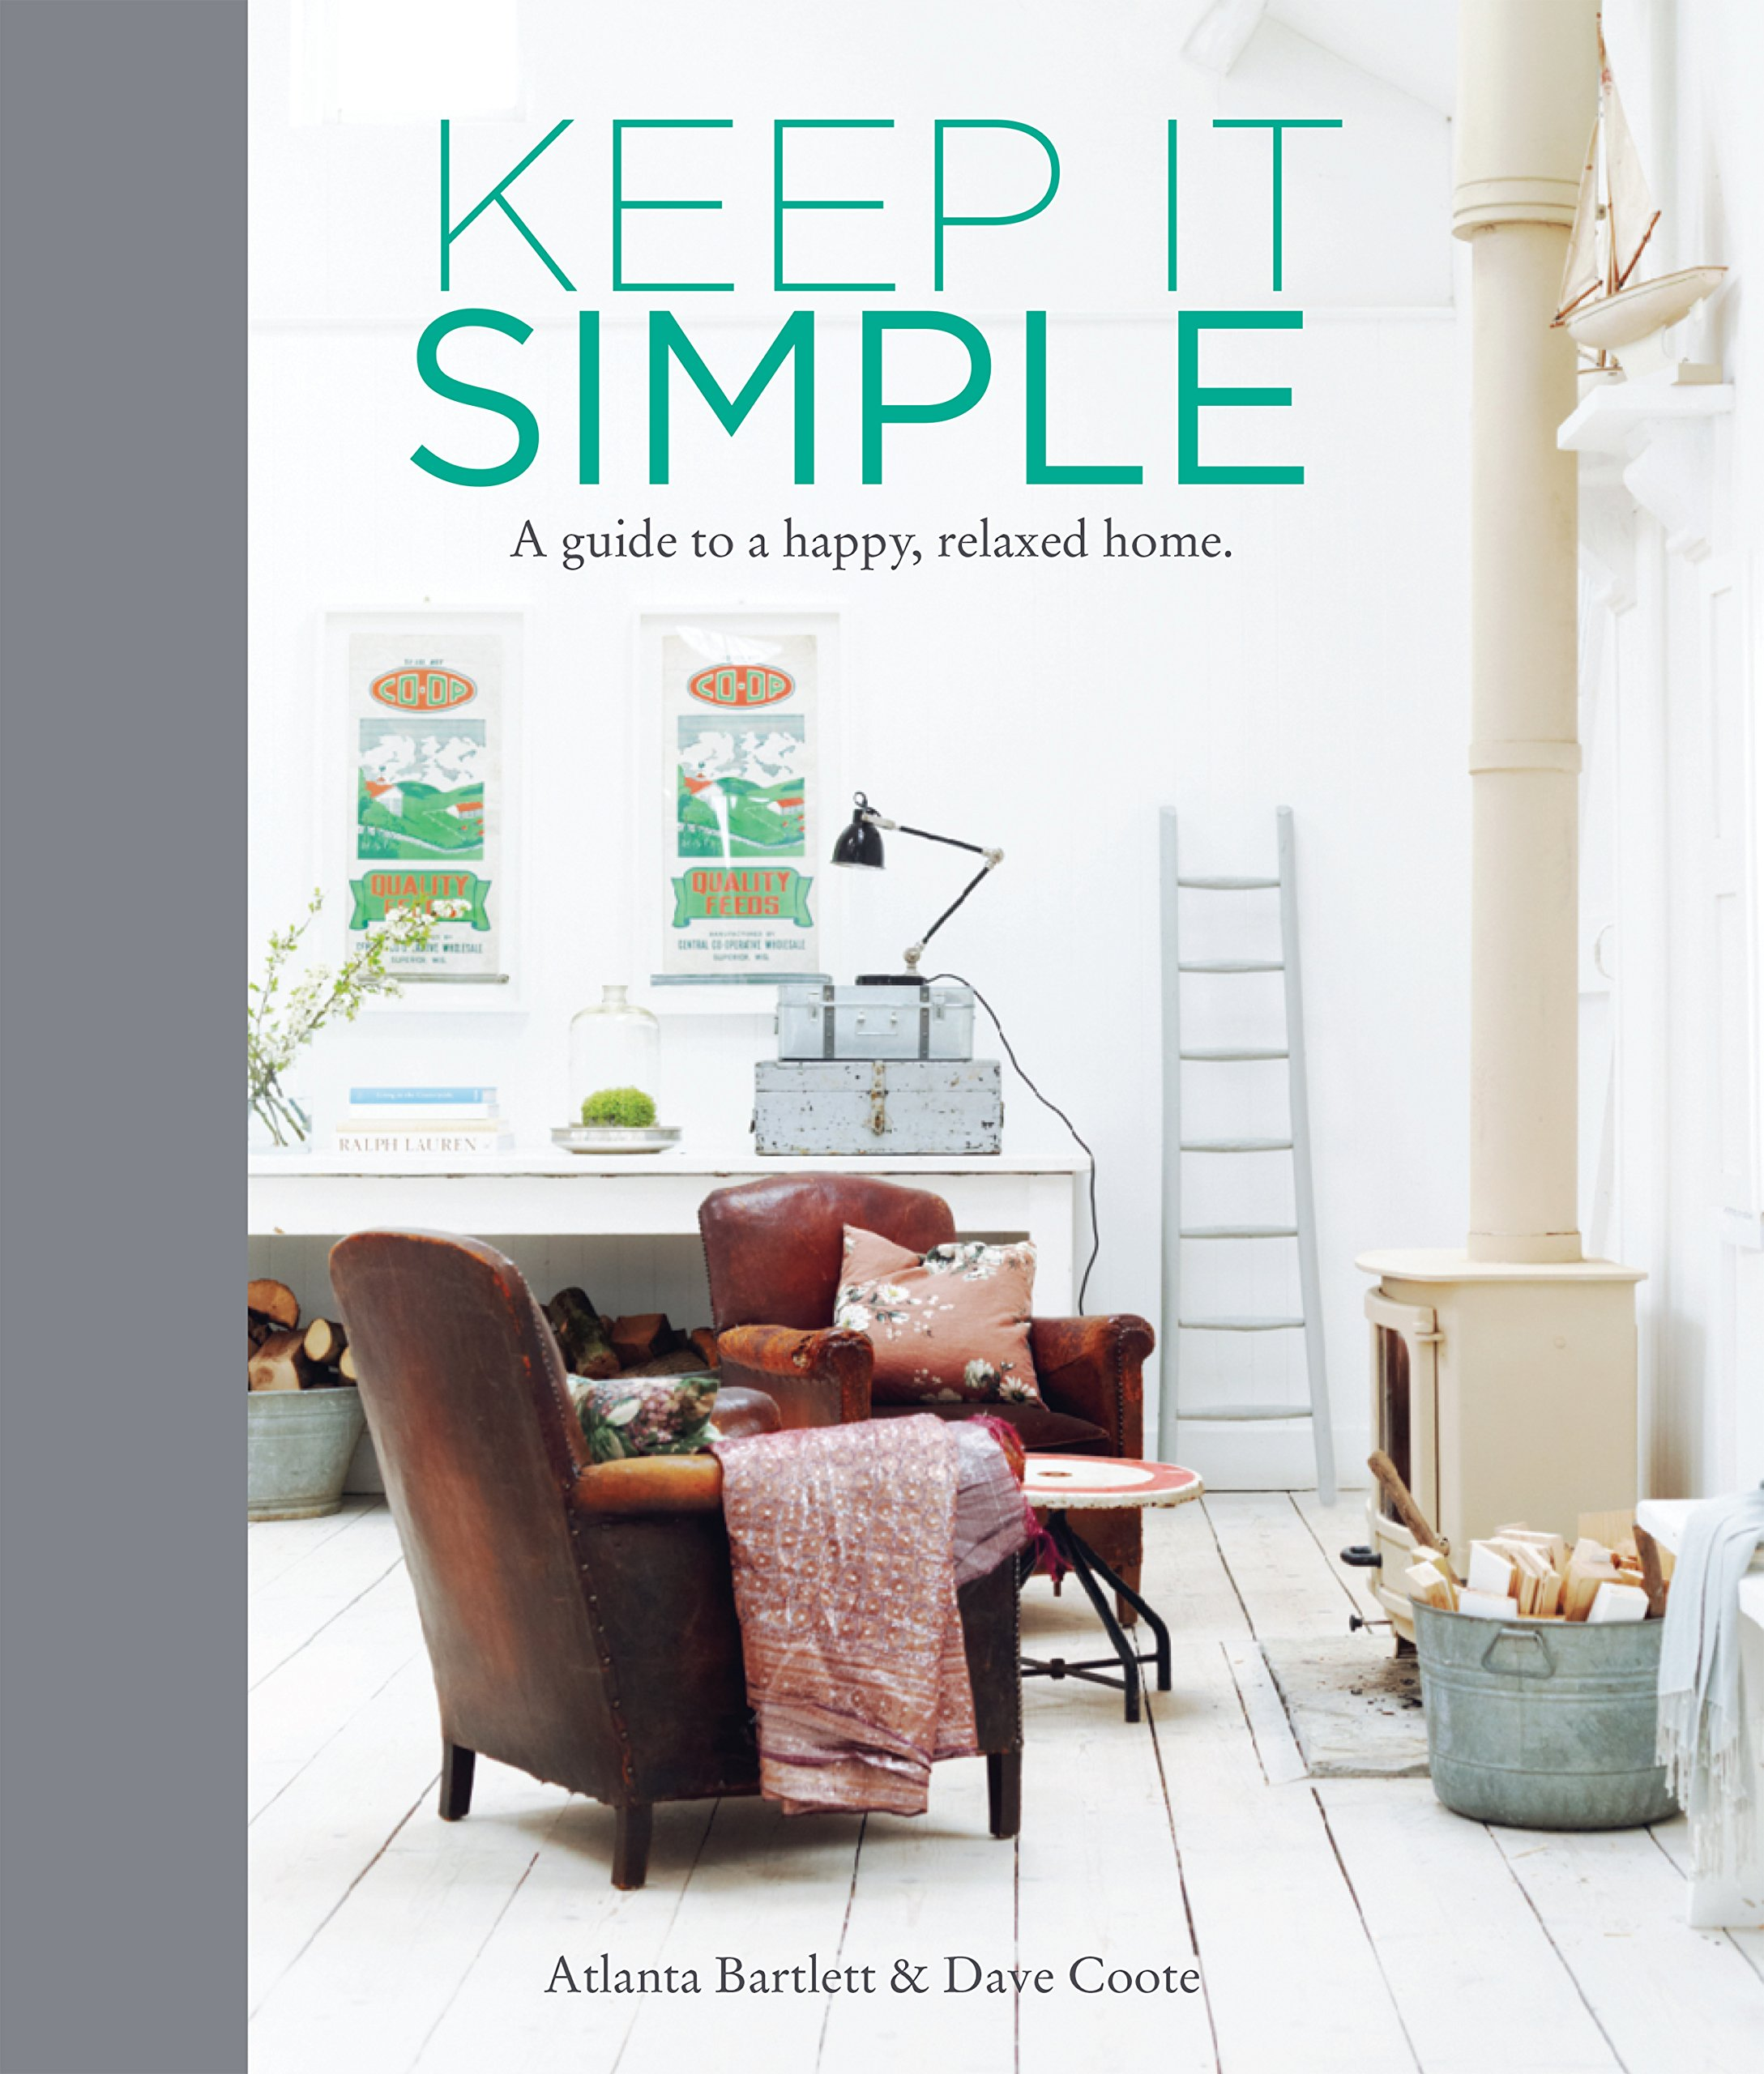 Image OfKeep It Simple: A Guide To A Happy, Relaxed Home